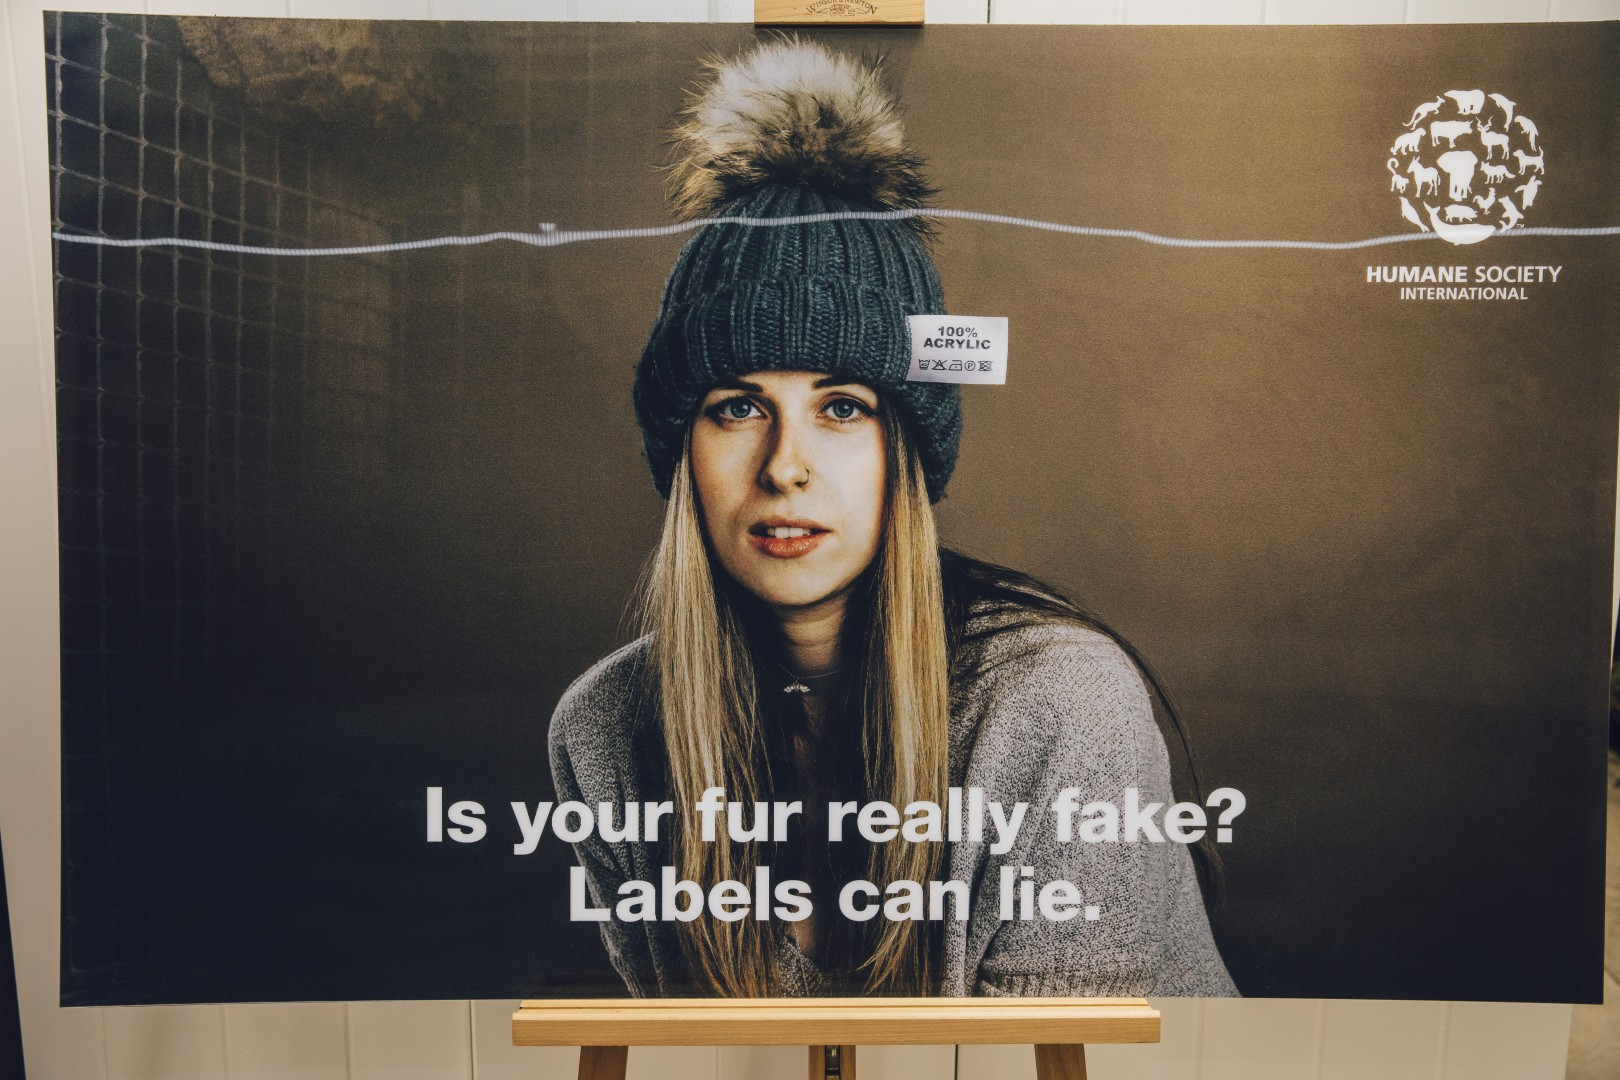 6dbe695e7cdc17 Fake fur or real - do labels lie? | South China Morning Post